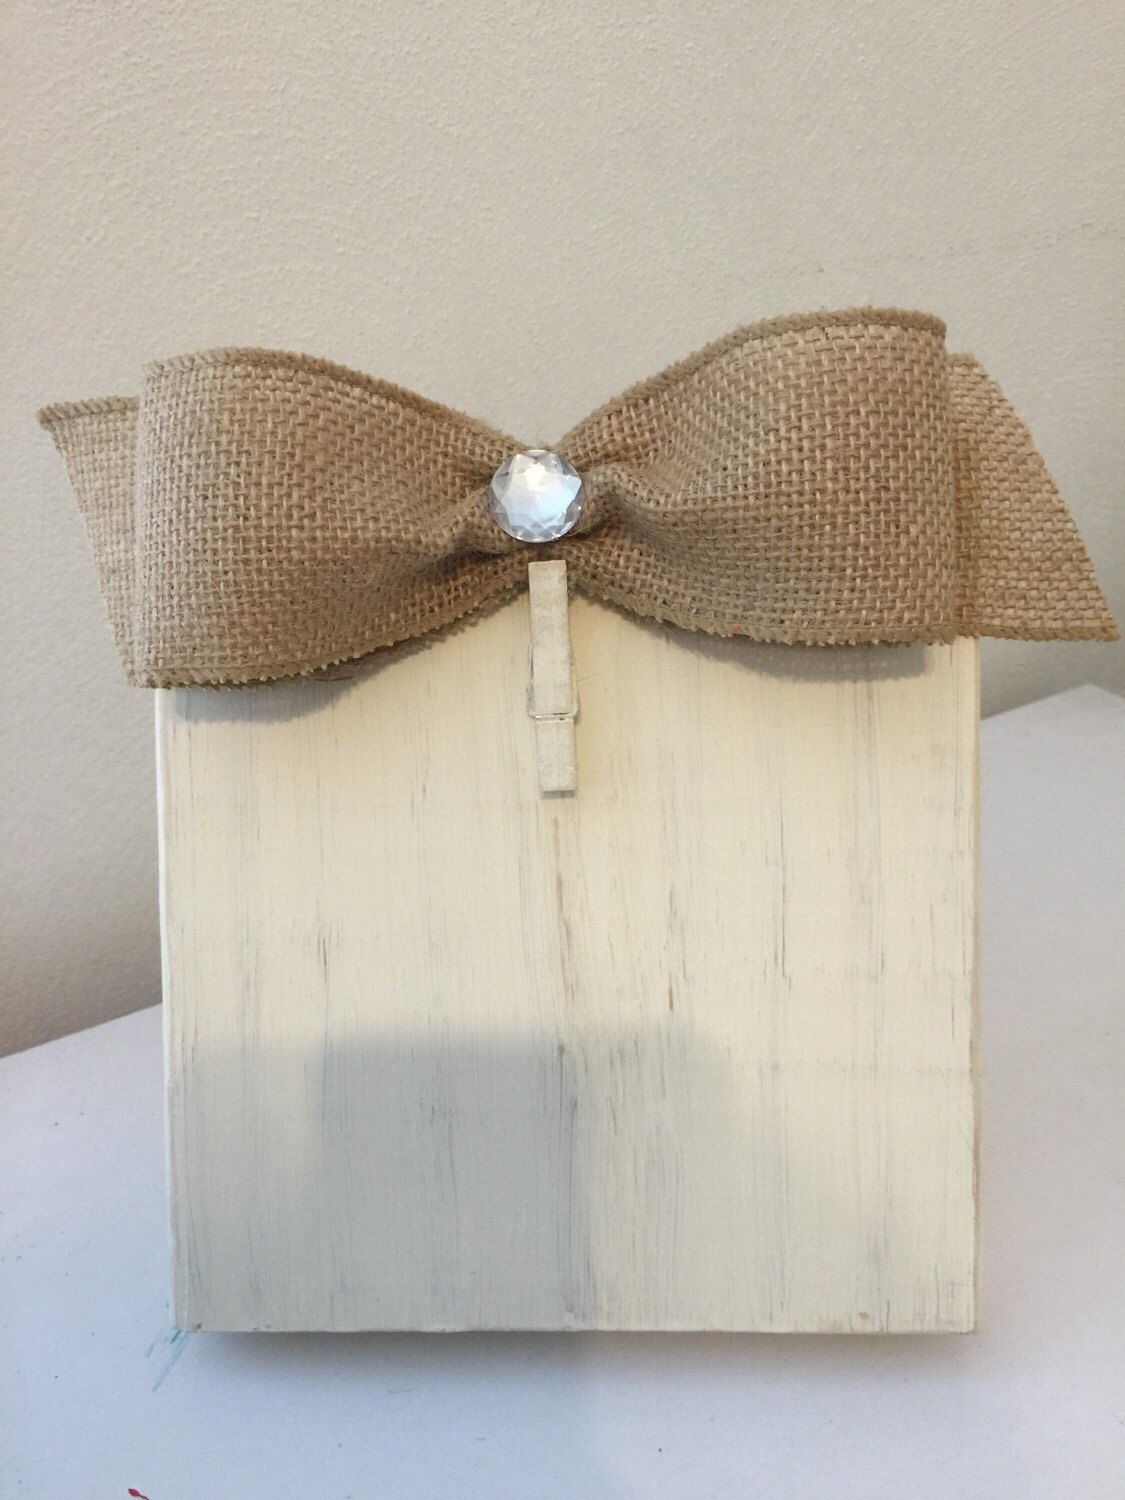 Antique White Distressed Painted Wood Block Frame with Burlap Bow ...